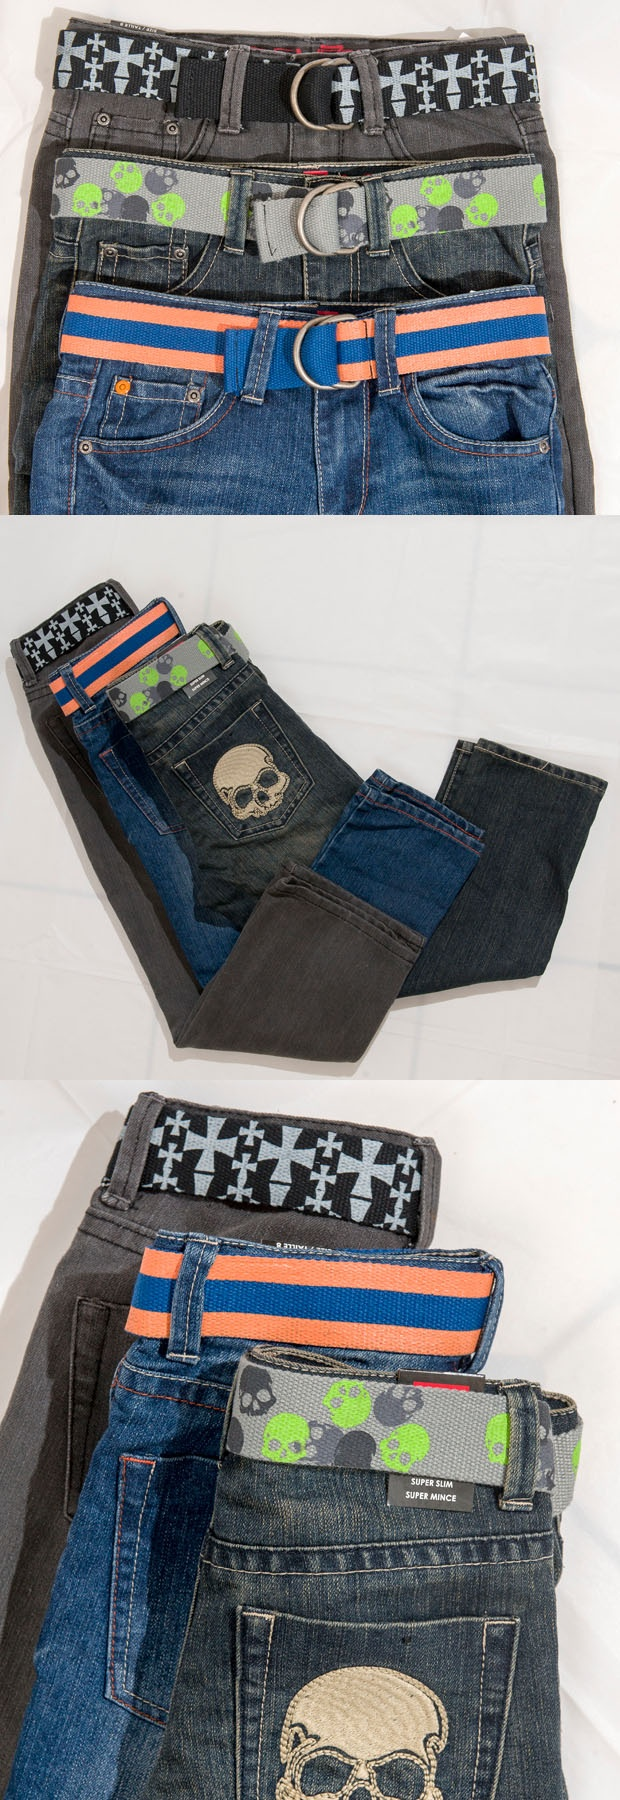 RETRO COOL: Boys denim jeans with belts by Extreme Zone, $29.99 at Sears.com (Available in sizes 7-16). Enter to win a $ 500 shopping spree with @TheProvince and Brentwood Town Centre: http://theprov.in/pinandwin #backtoschool